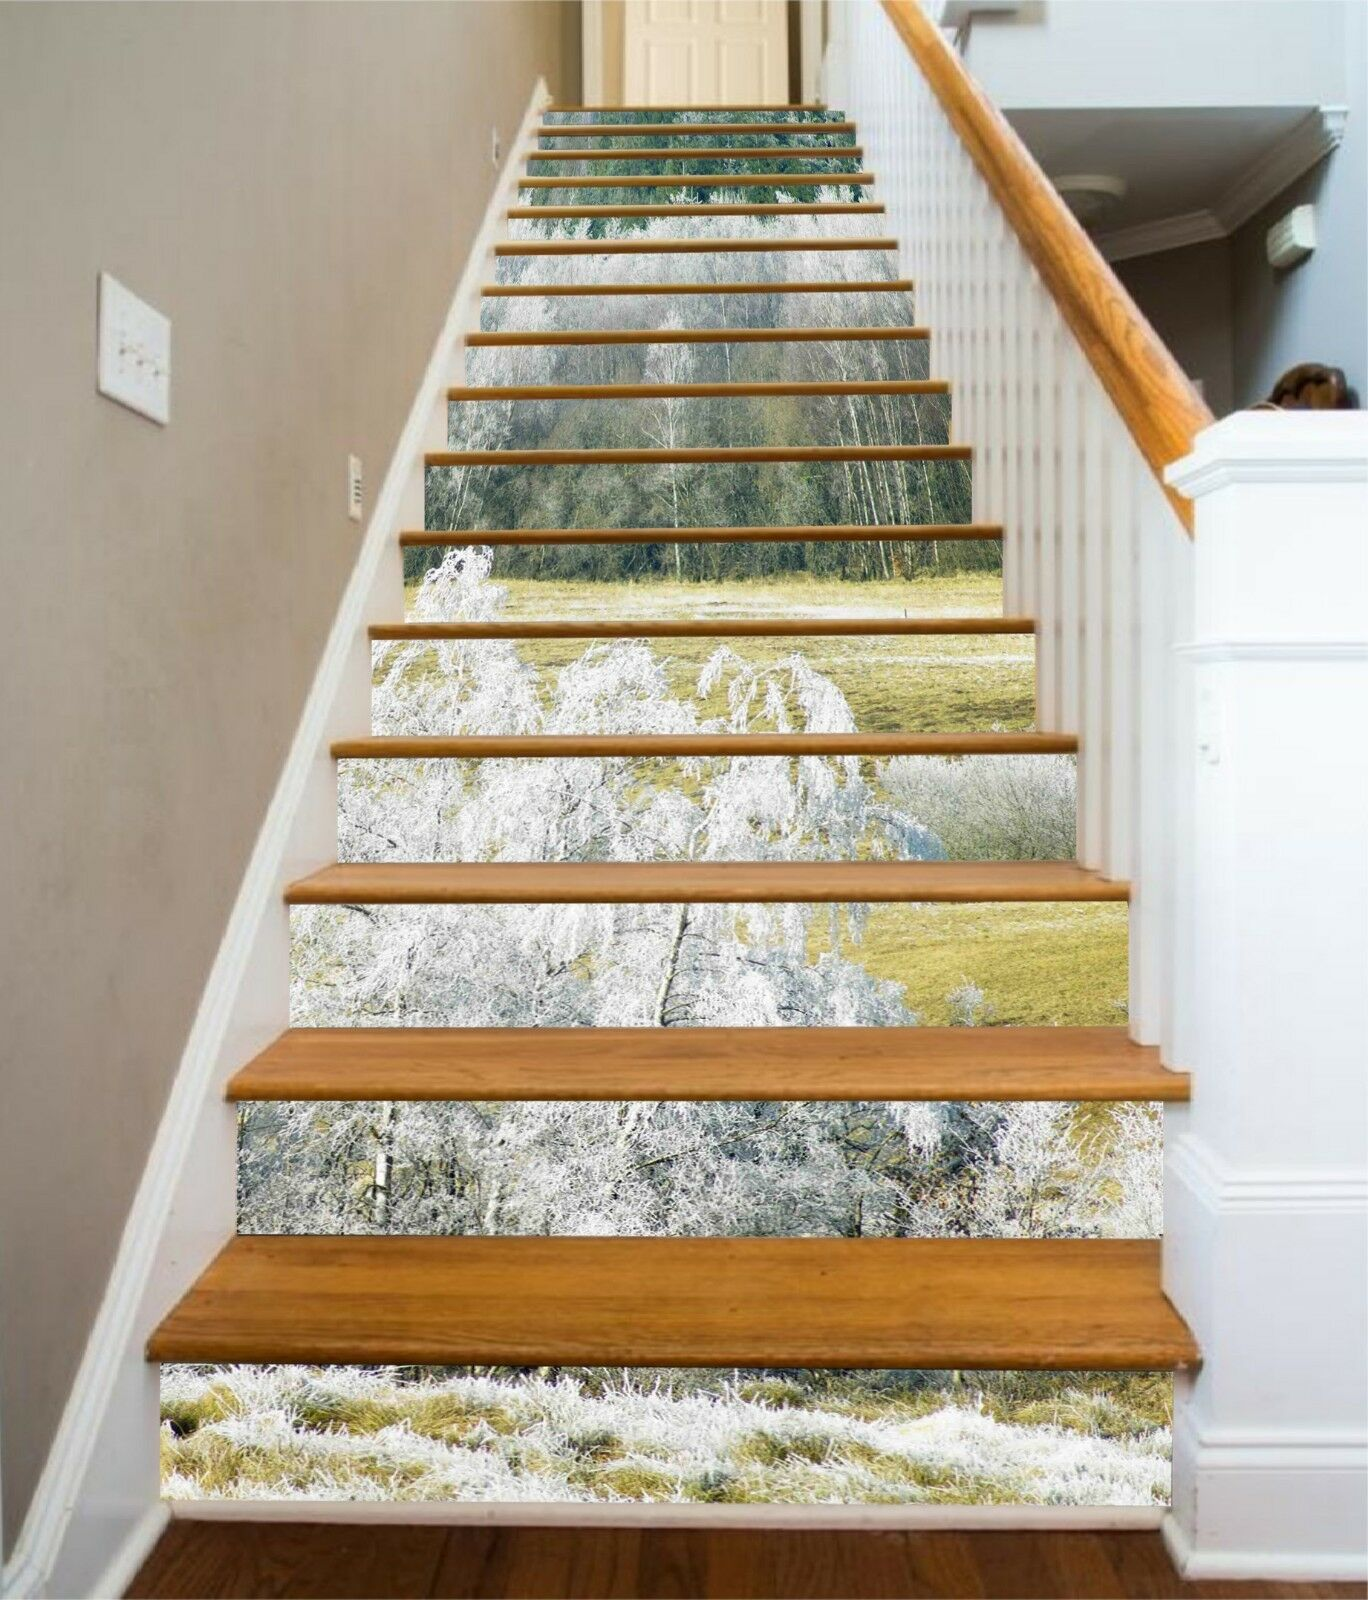 3D Weiß Trees Stair Risers Decoration Photo Mural Vinyl Decal Wallpaper US